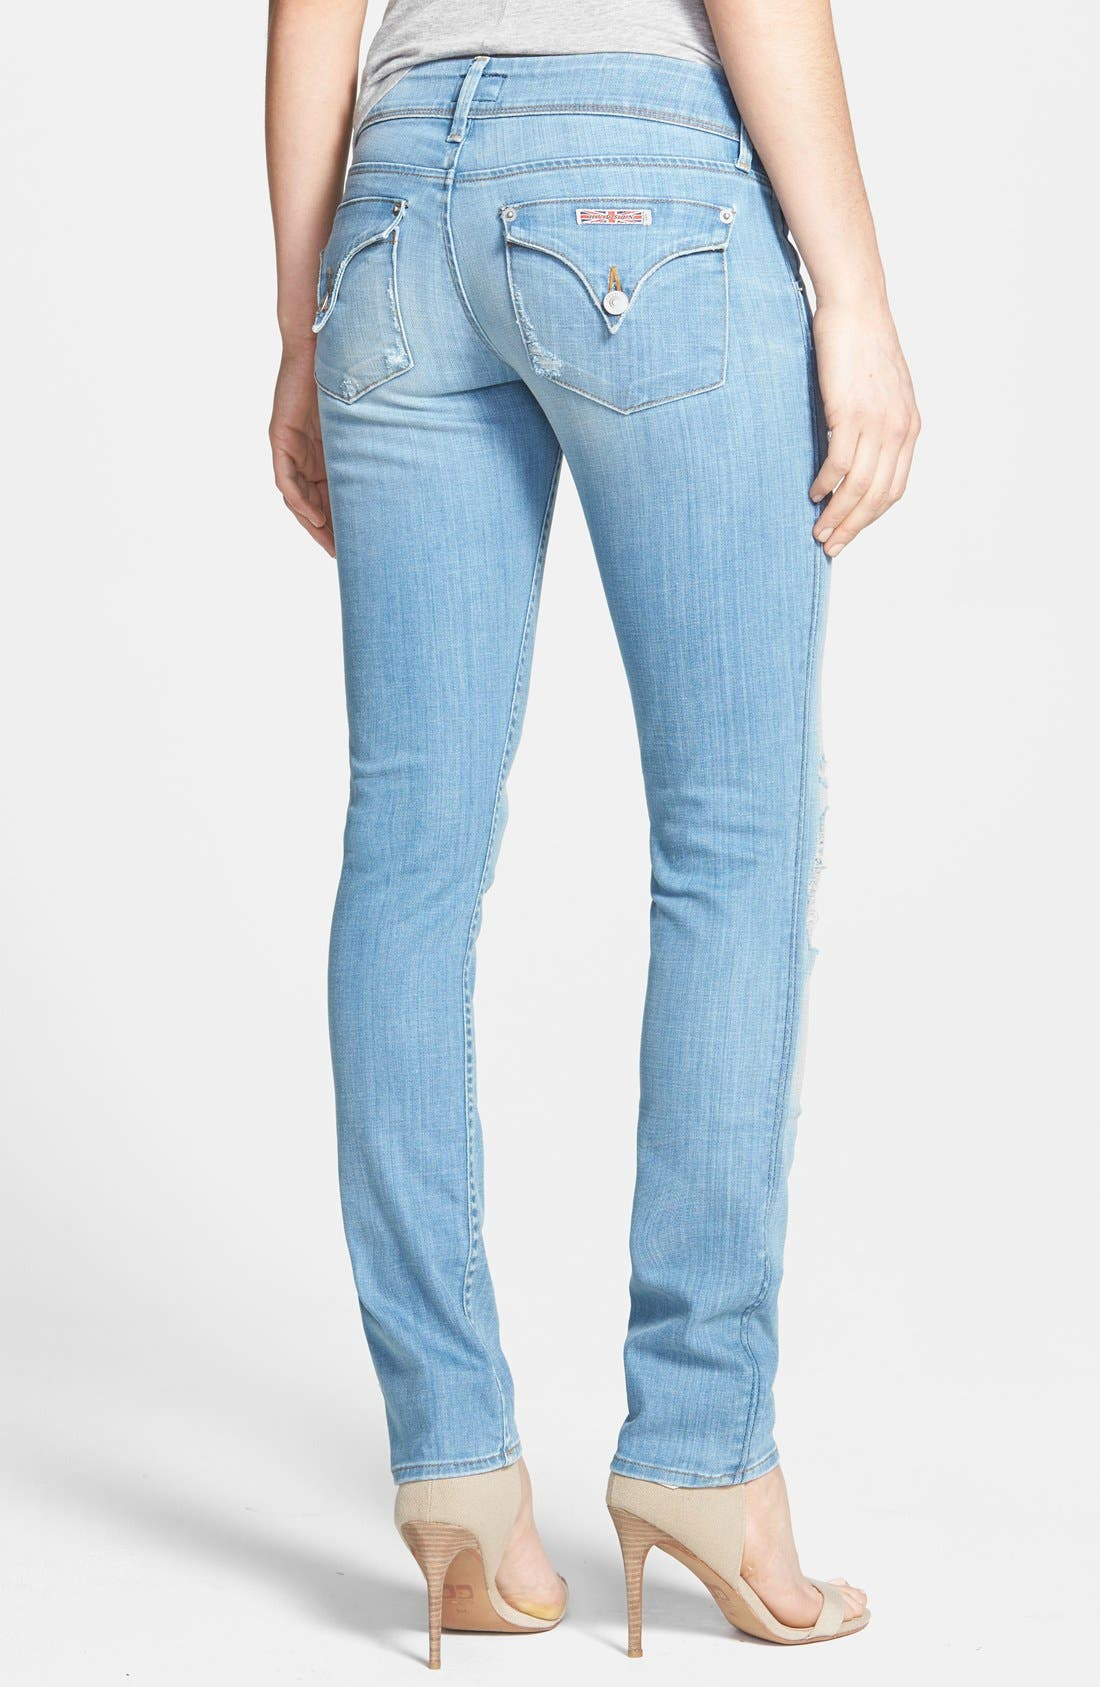 Alternate Image 2  - Hudson Jeans 'Collin' Skinny Jeans (Soul Search)